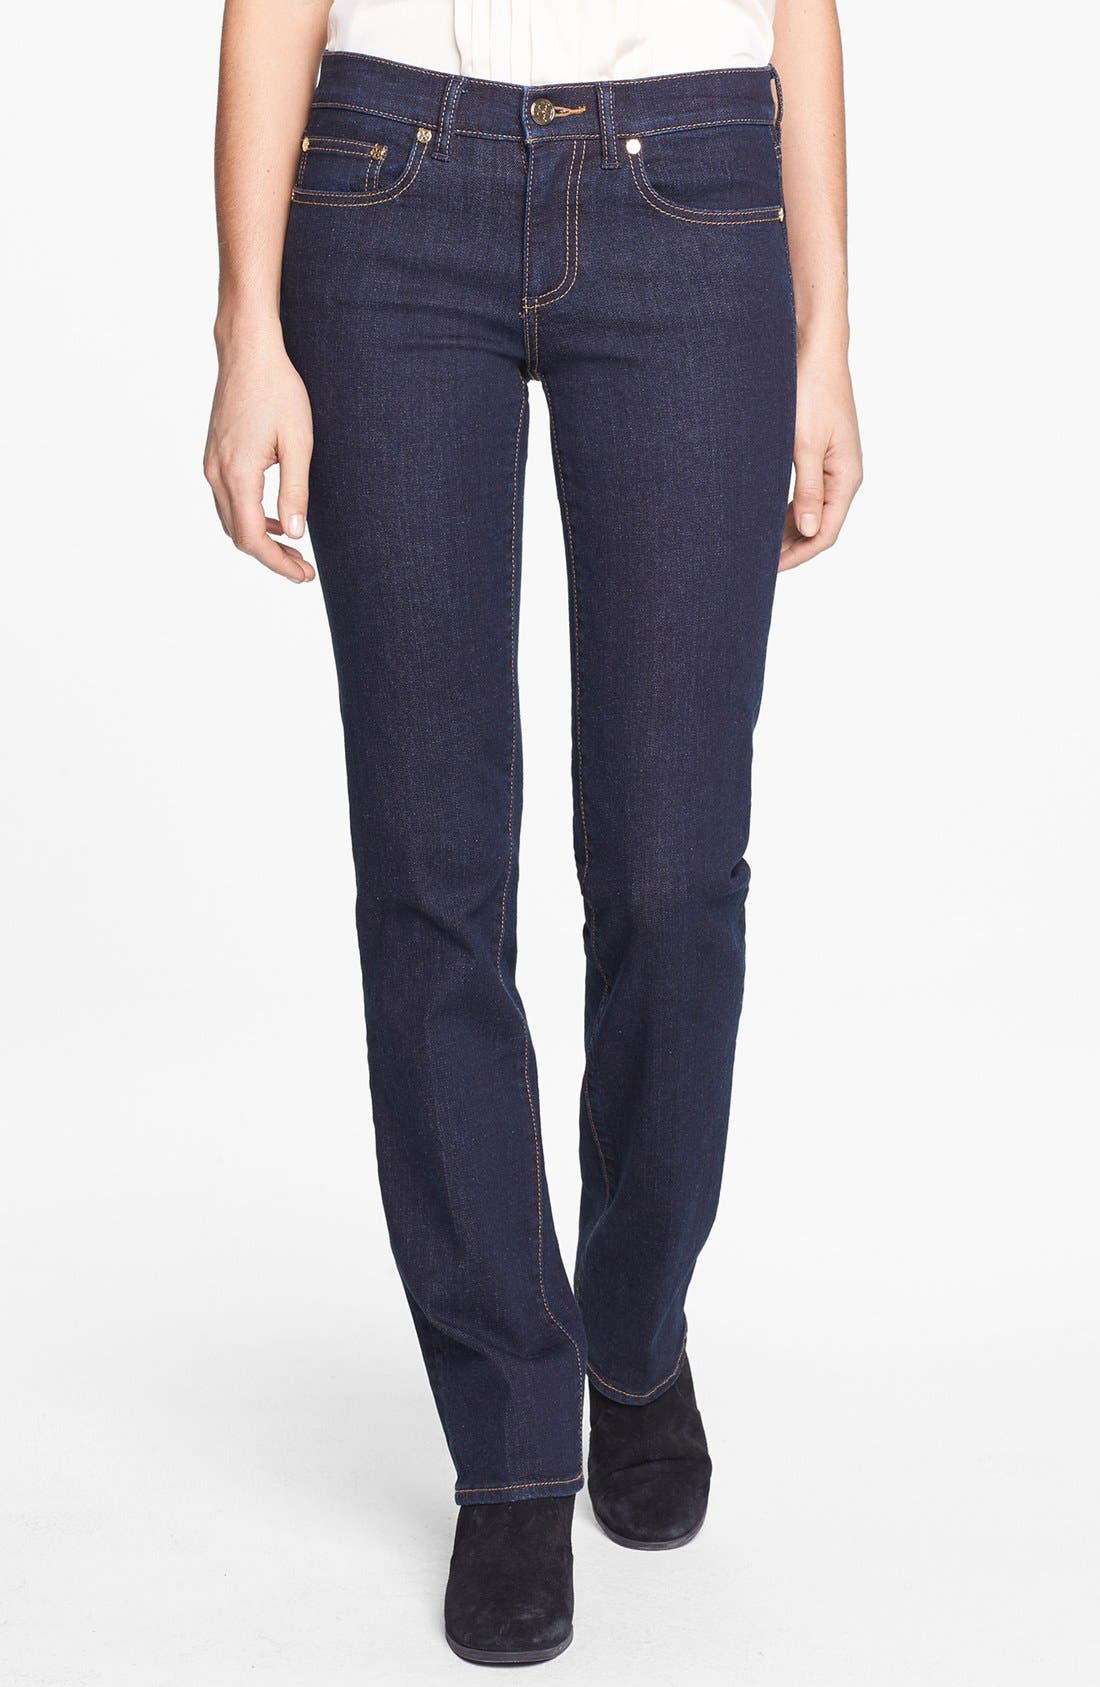 Alternate Image 1 Selected - Tory Burch Stretch Straight Leg Jeans